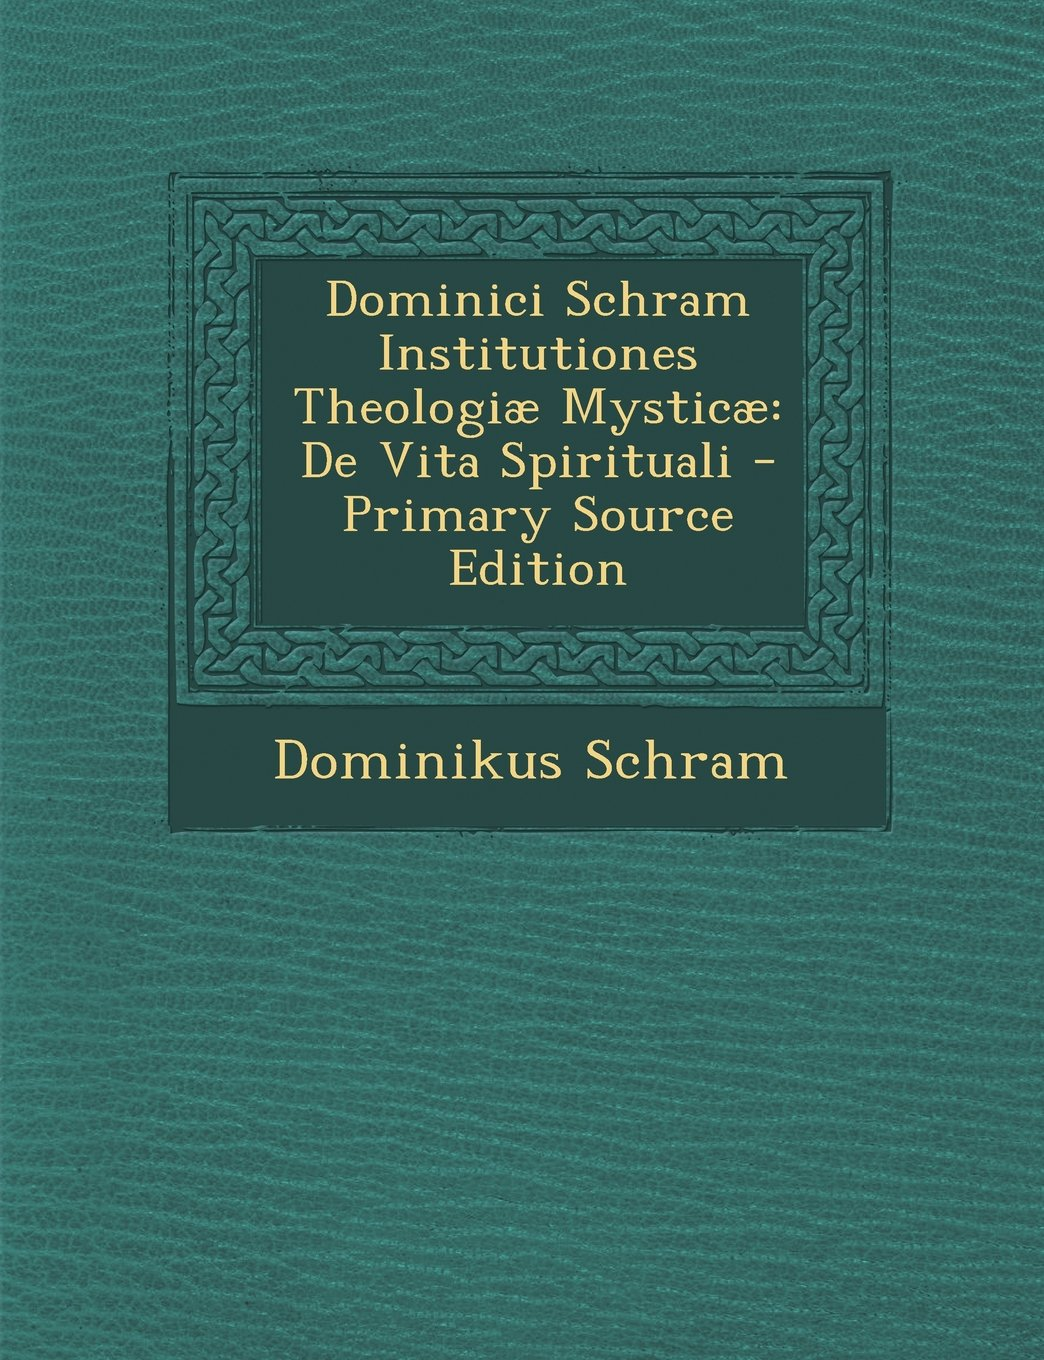 Download Dominici Schram Institutiones Theologiae Mysticae: de Vita Spirituali - Primary Source Edition (Latin Edition) pdf epub